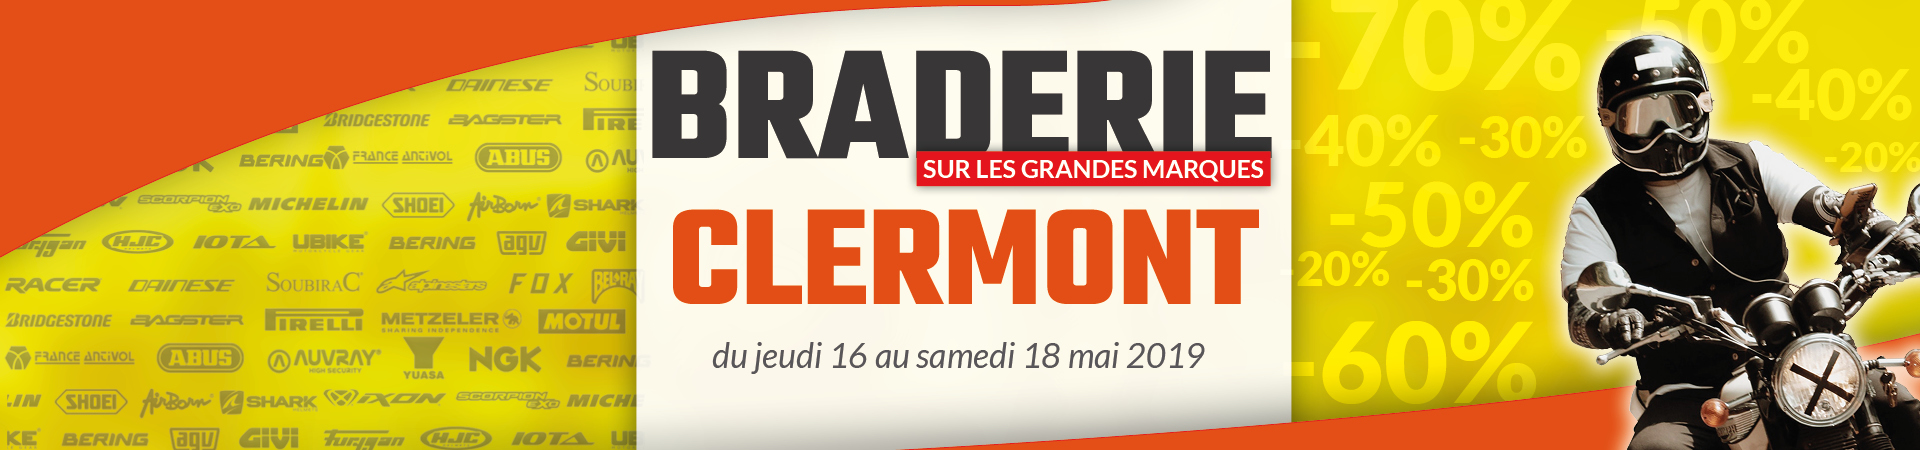 Braderie Cardy Clermont-Ferrand 2019